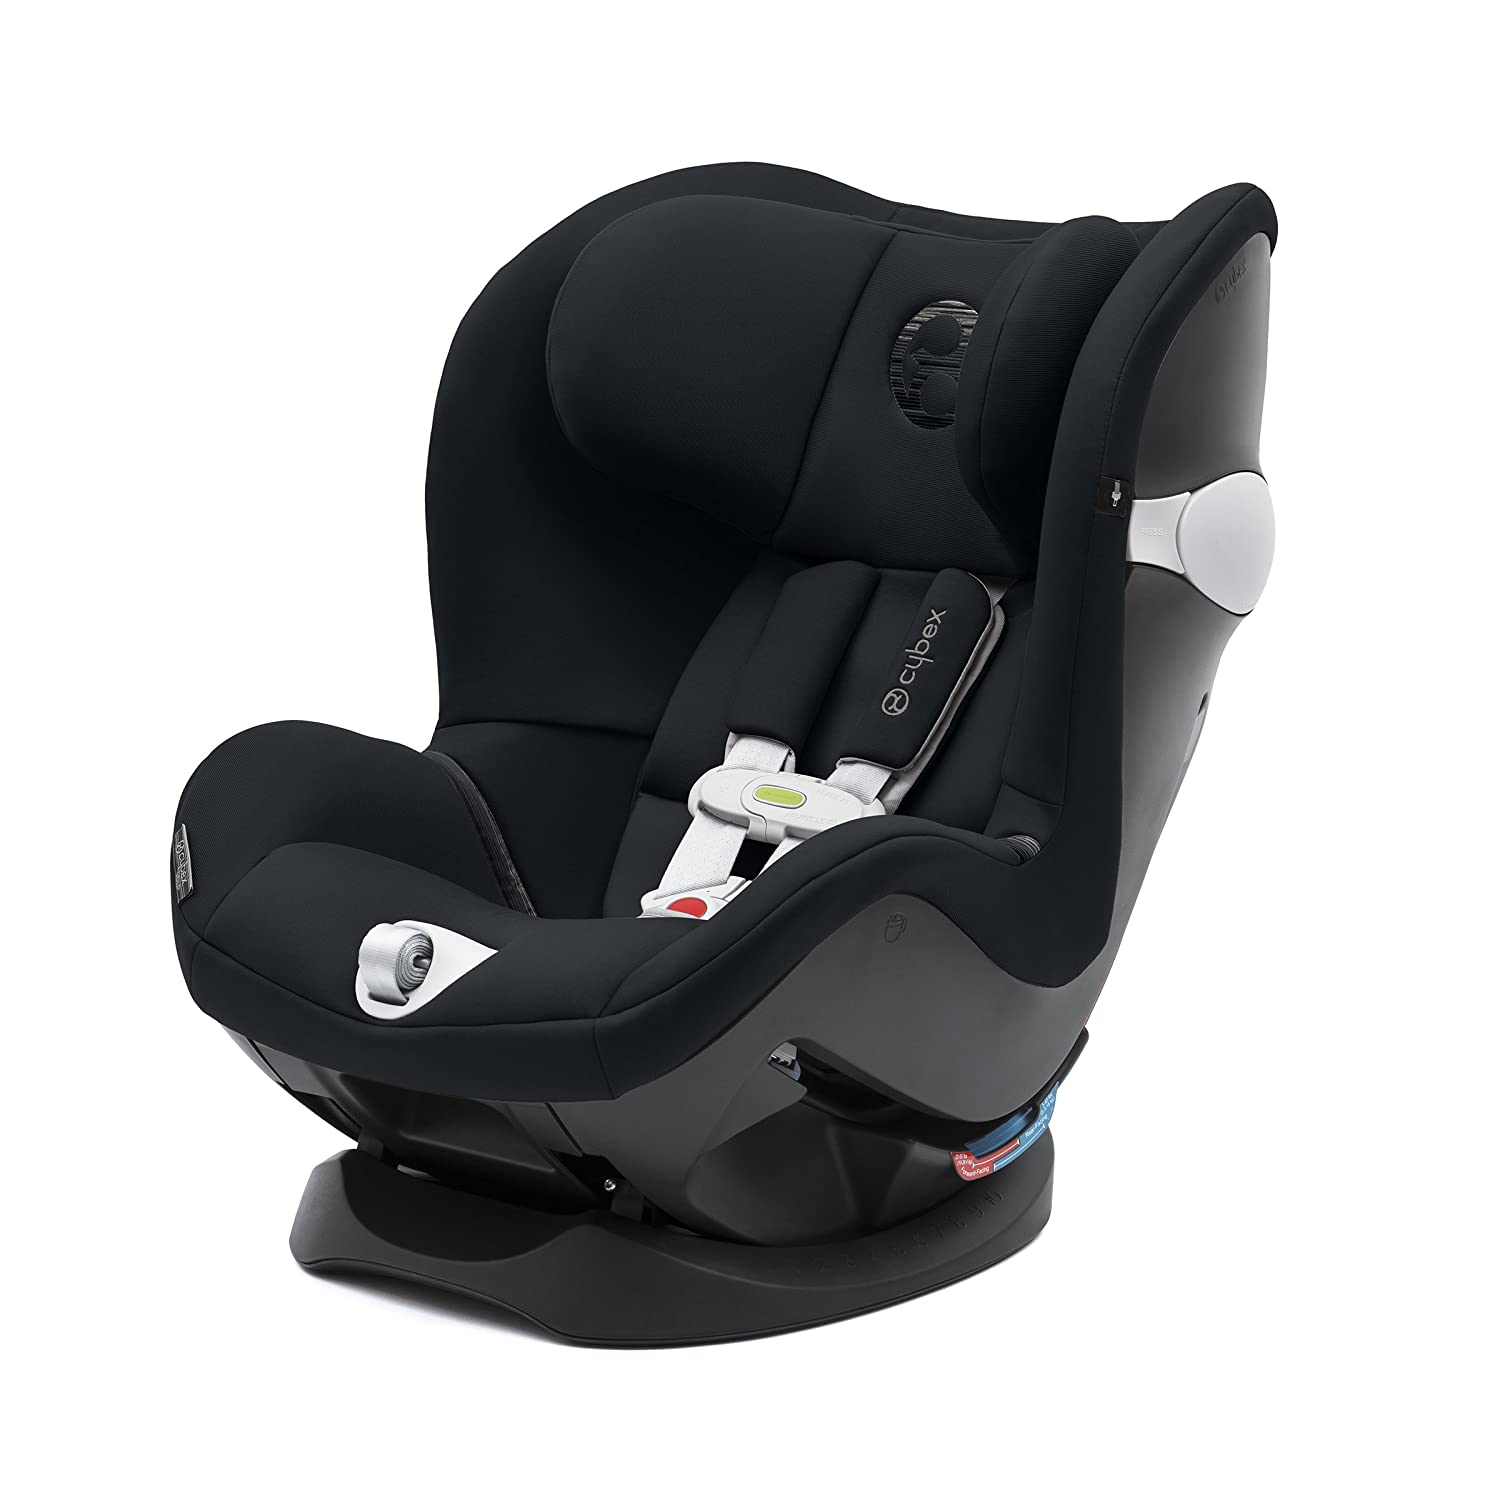 Top 7 Best Affordable Convertible Car Seats (2020 Reviews) 2